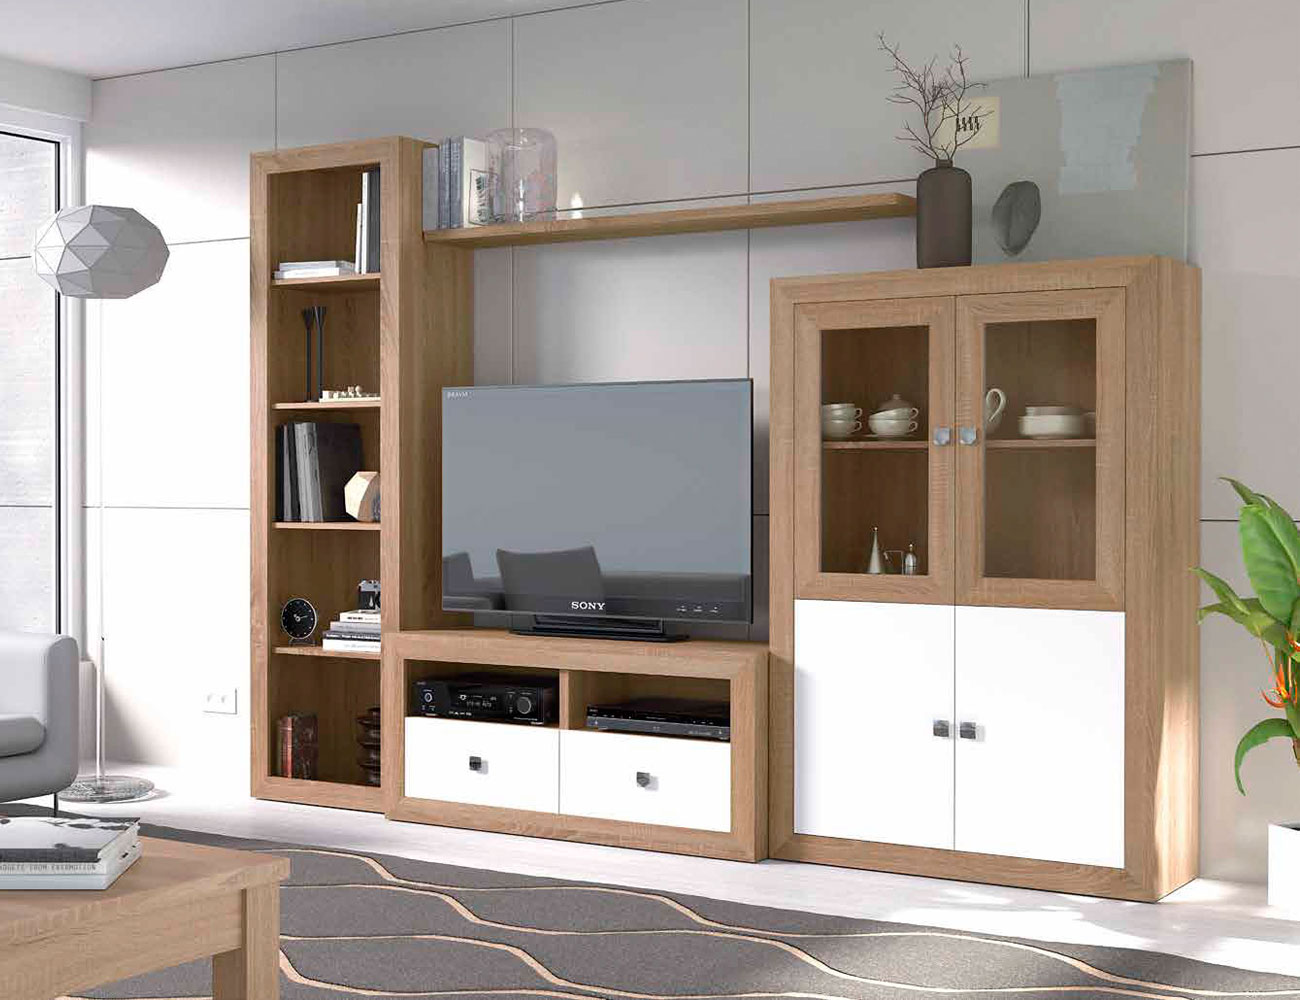 Mueble salon colonial mueble salon moderno wengue with for Mueble colonial blanco